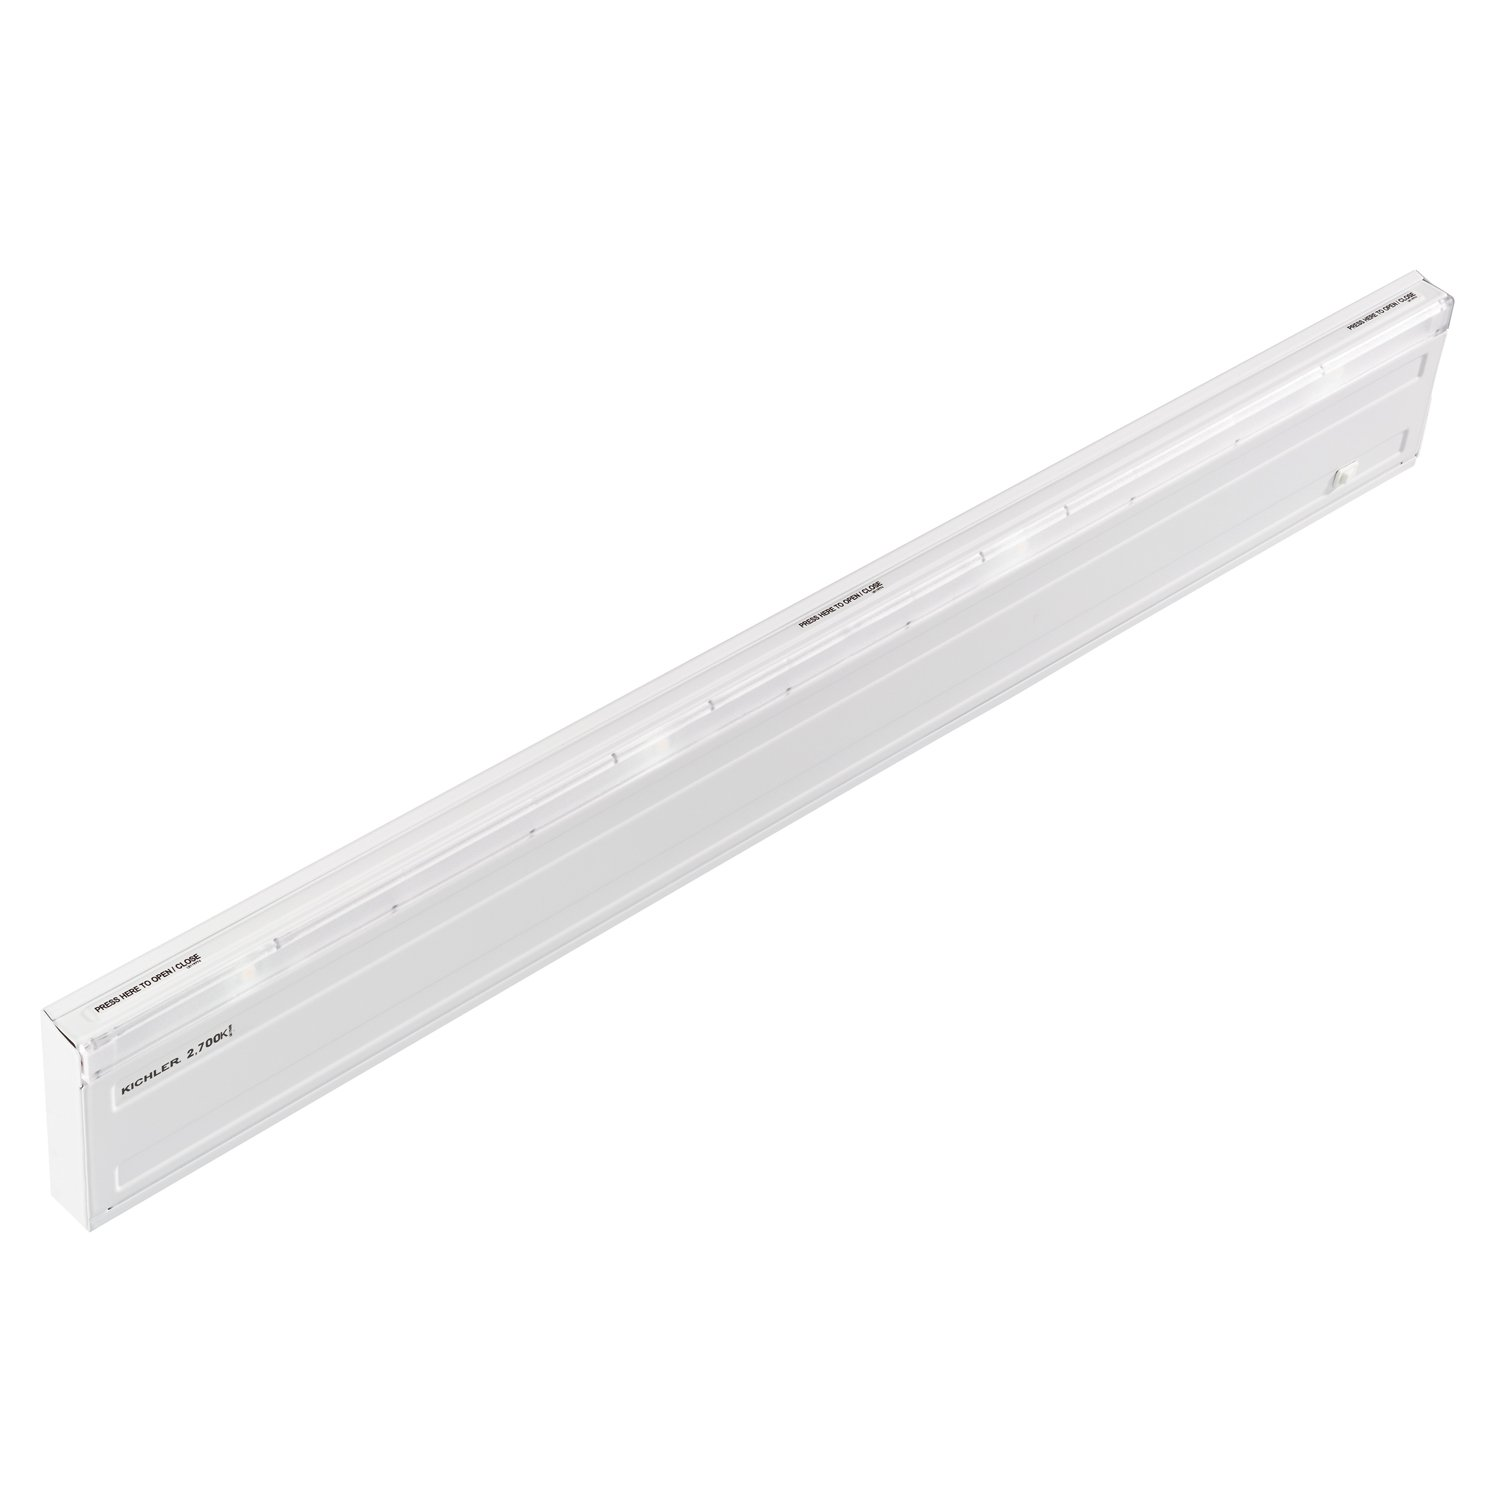 Kichler 12068WH27 LED Under Cabinet by Kichler